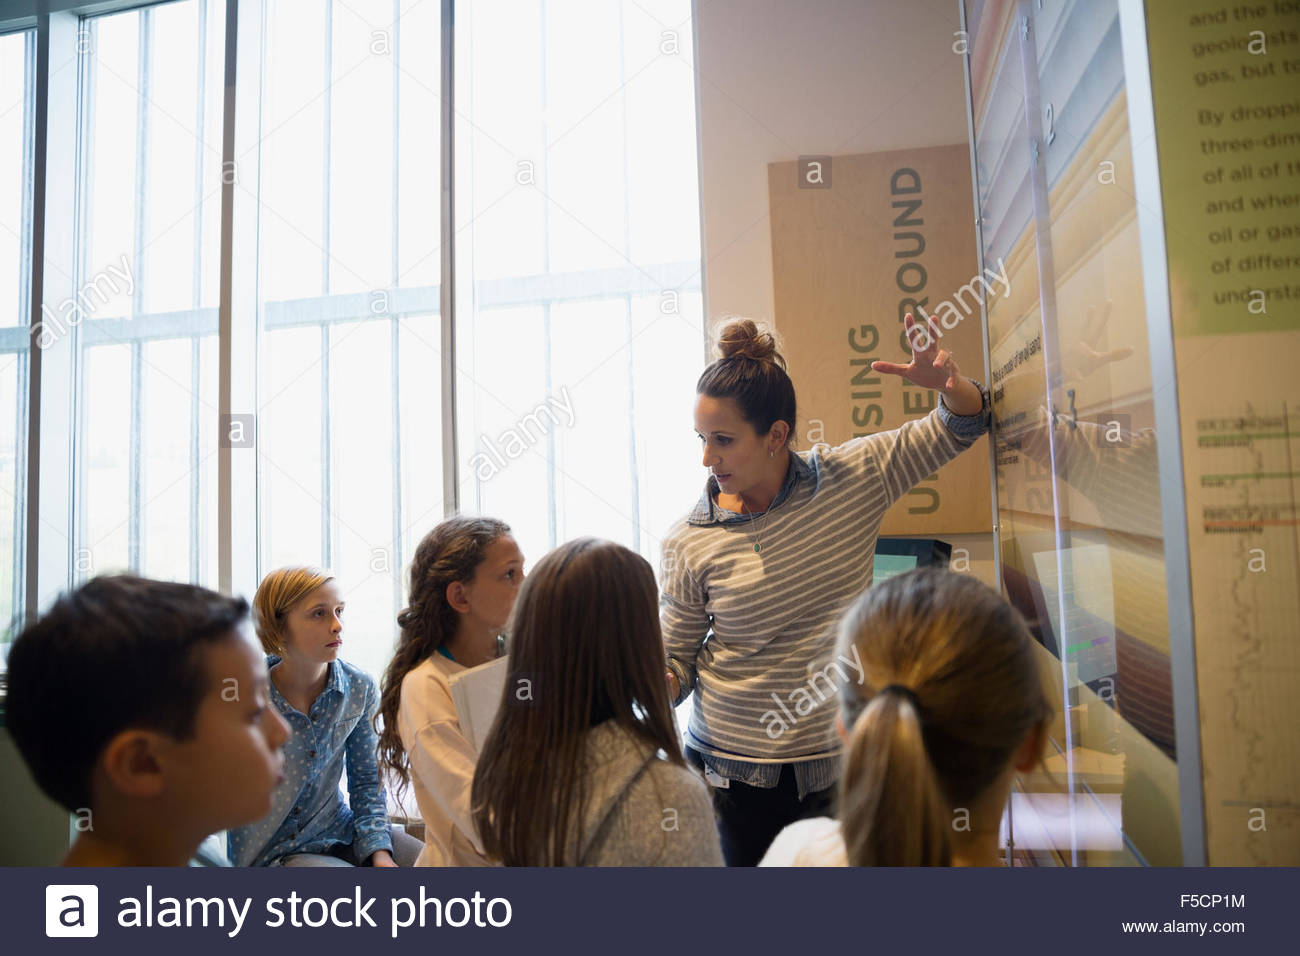 Teacher explaining exhibit to students in science center - Stock Image